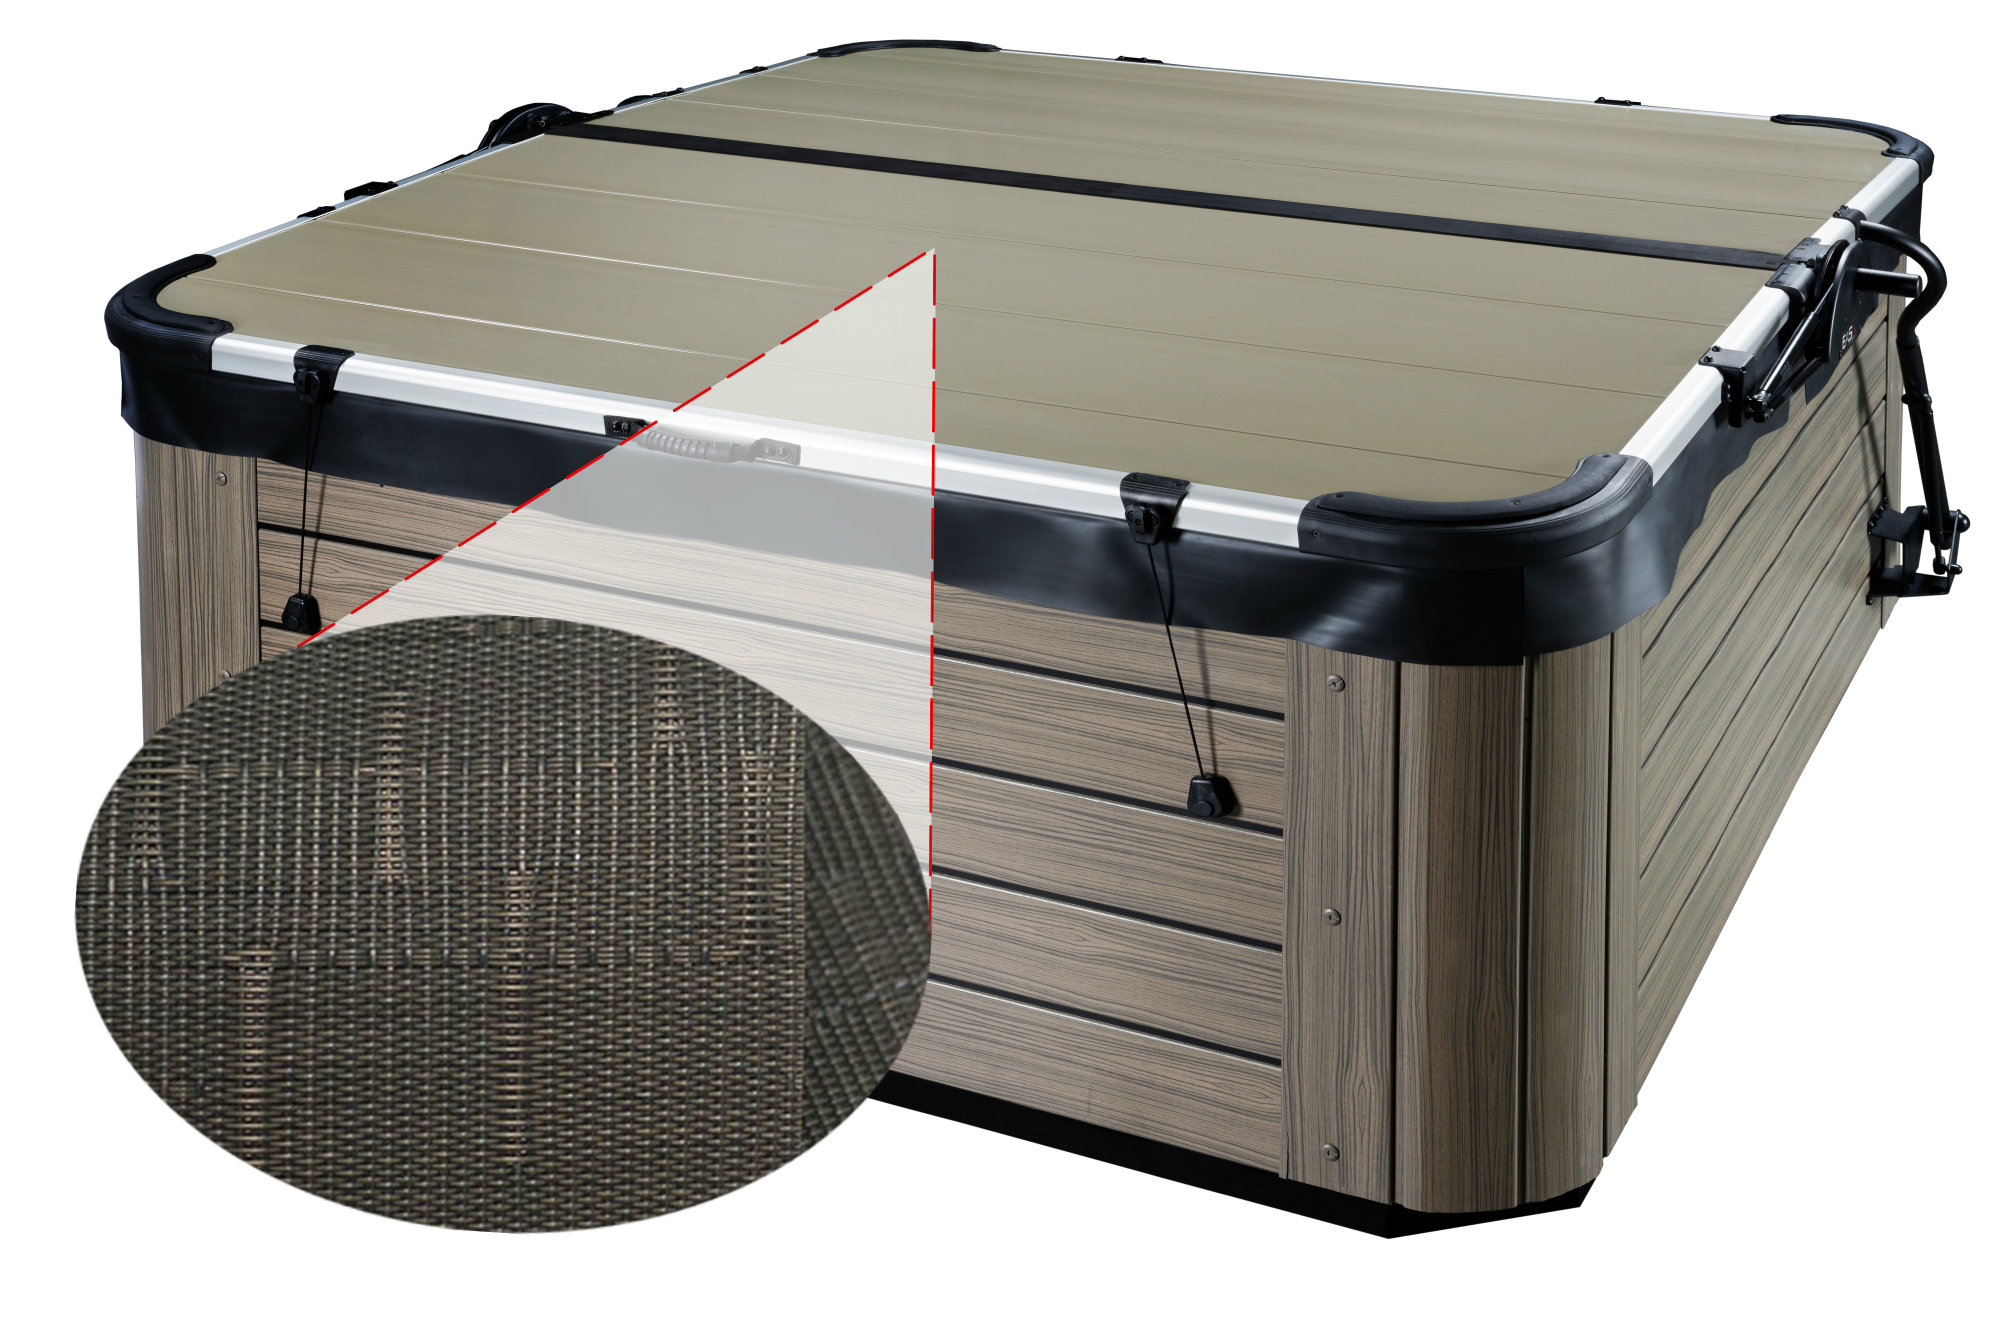 Leisure Concepts Introduces New Spa Cover Pool Amp Spa News